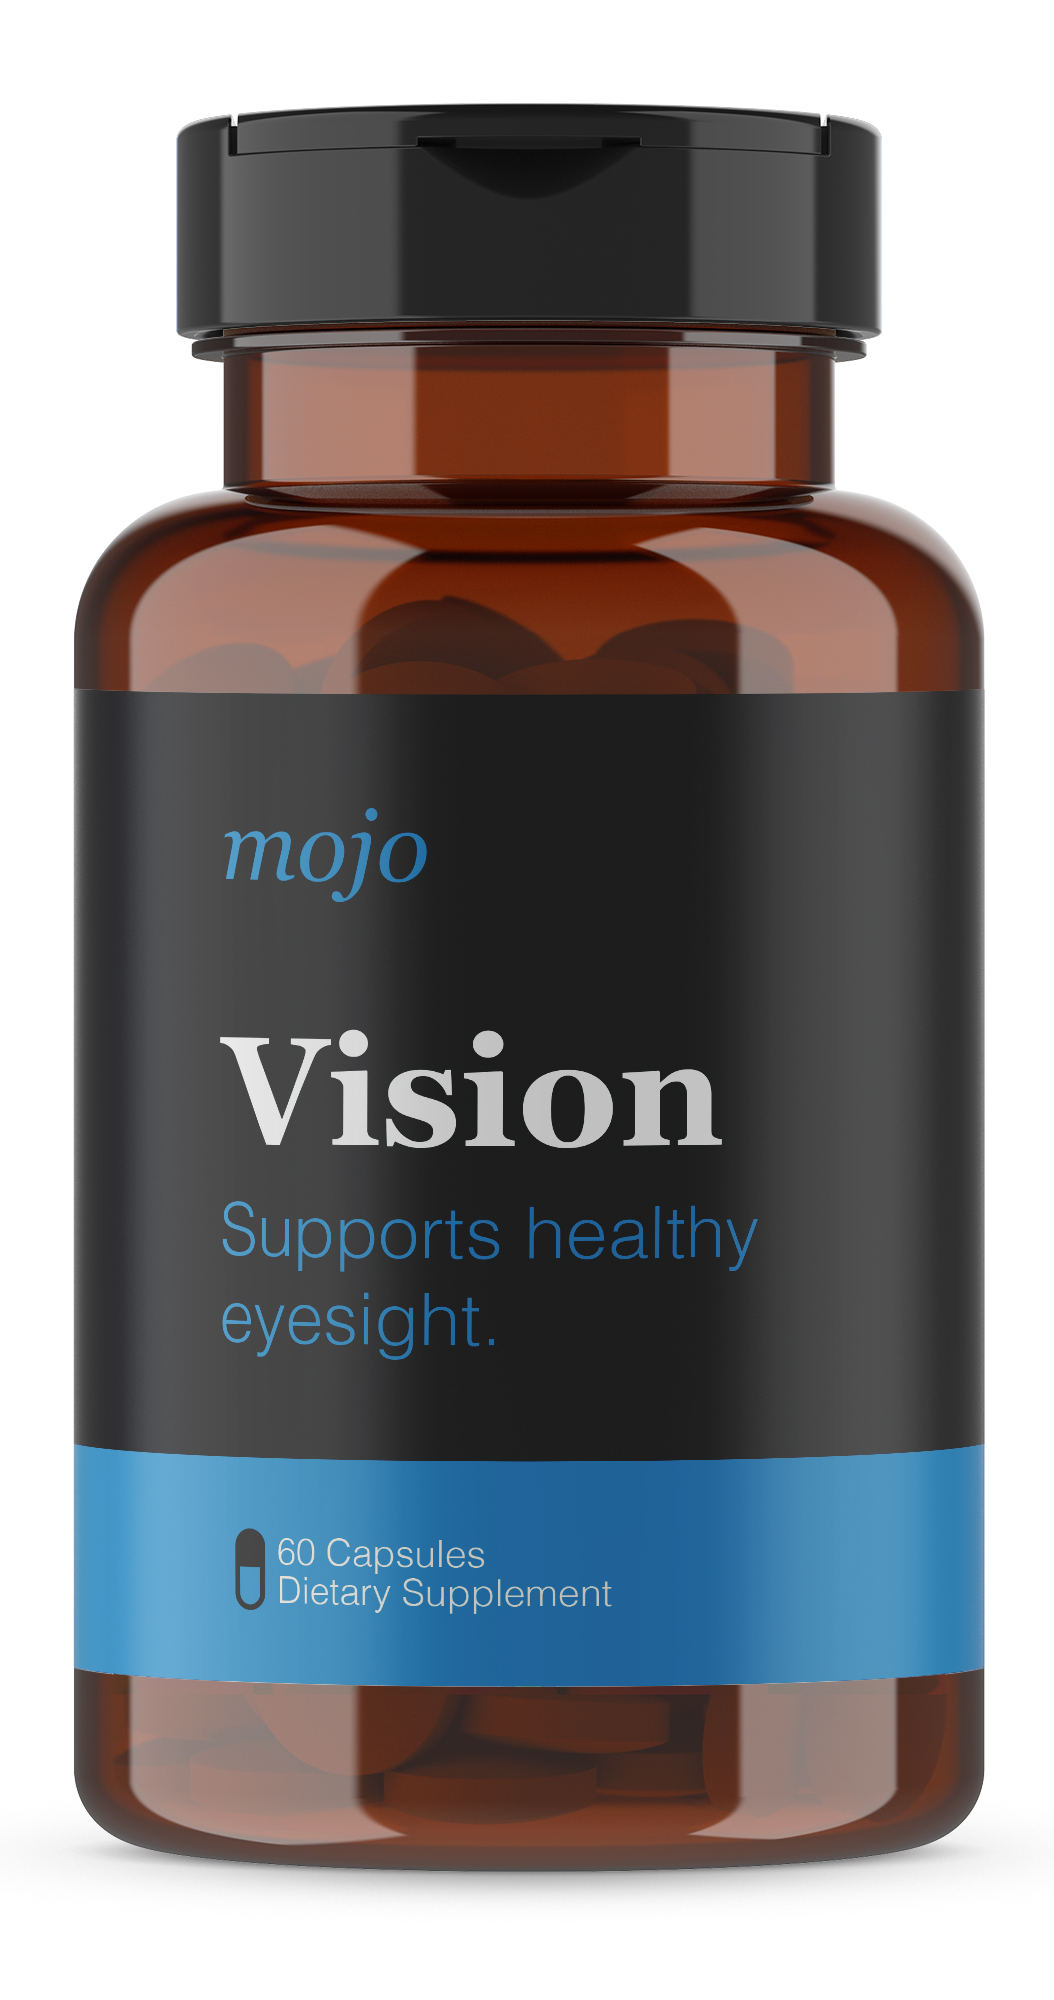 mojo-vision-supplement-amber